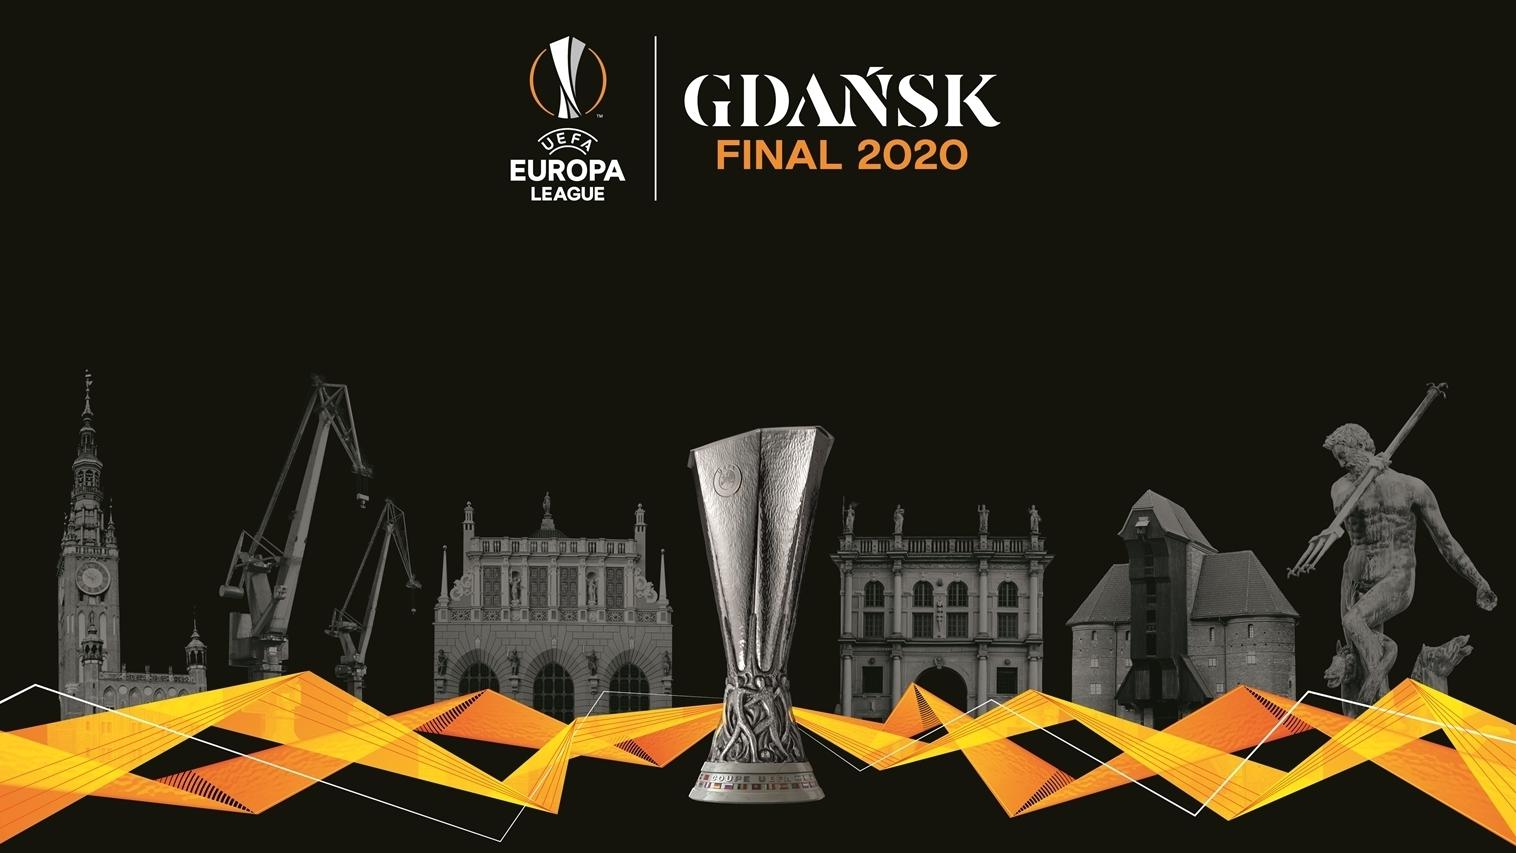 2020 gdansk uefa europa league final identity unveiled inside uefa uefa com 2020 gdansk uefa europa league final